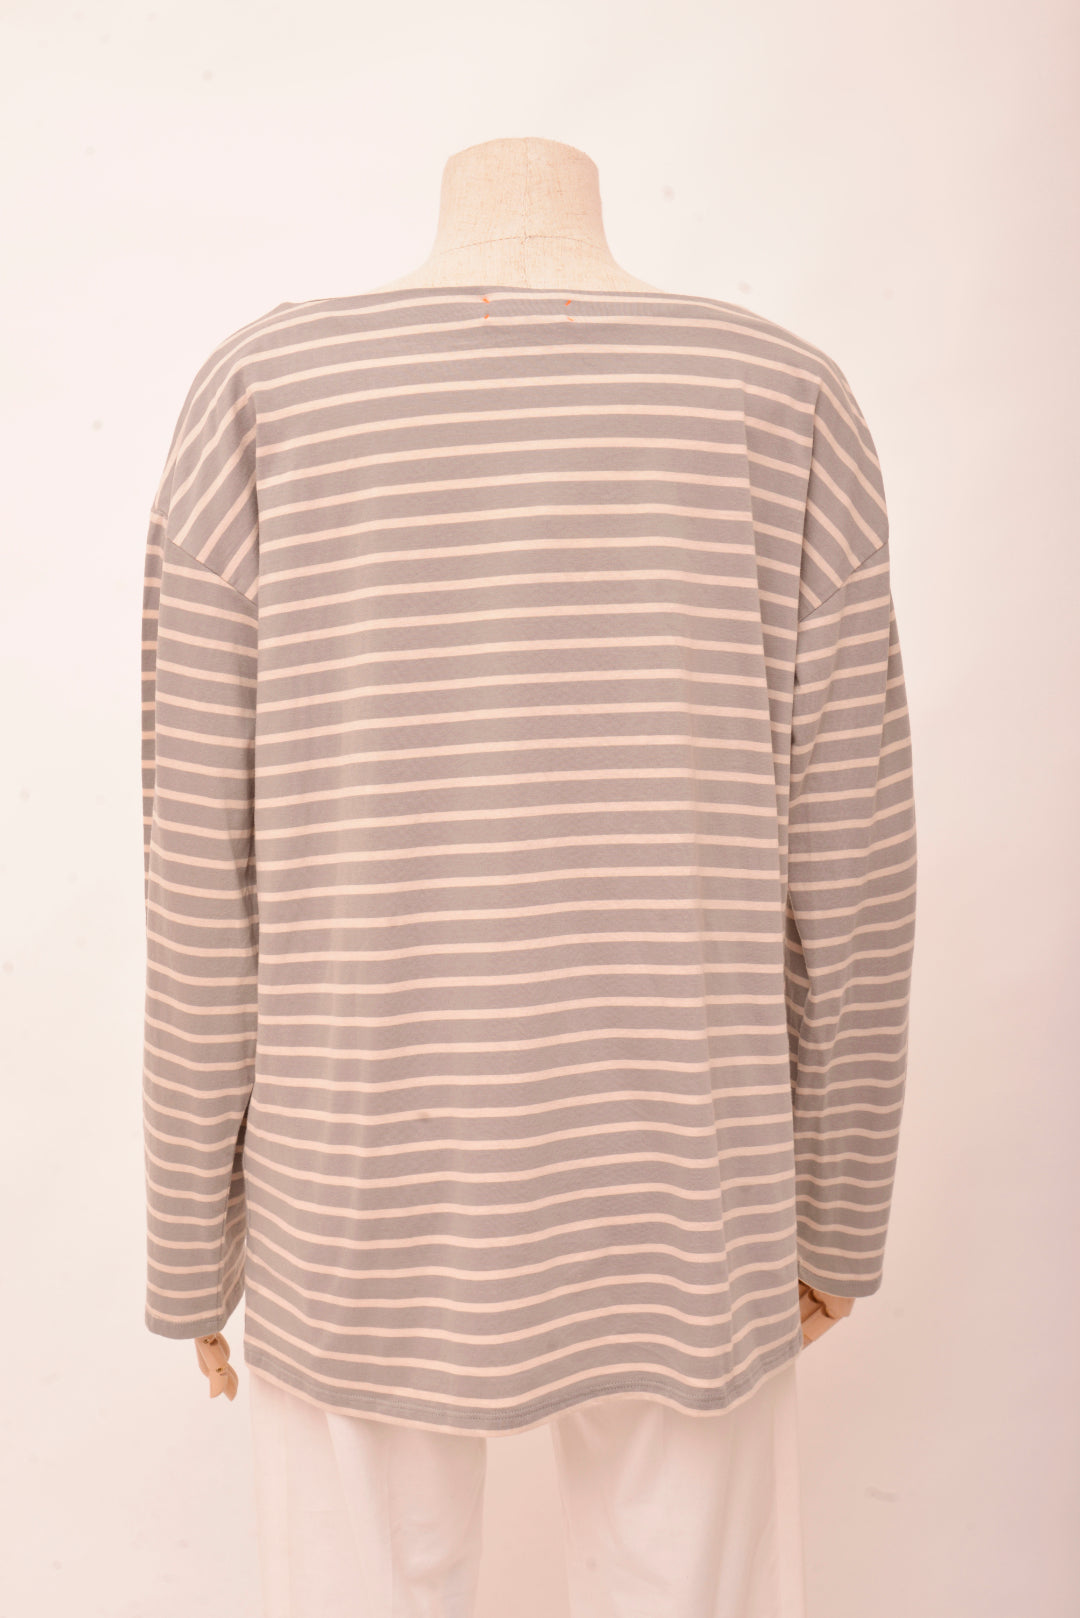 Chinti & Parker Grey Top (L) - Mercado32